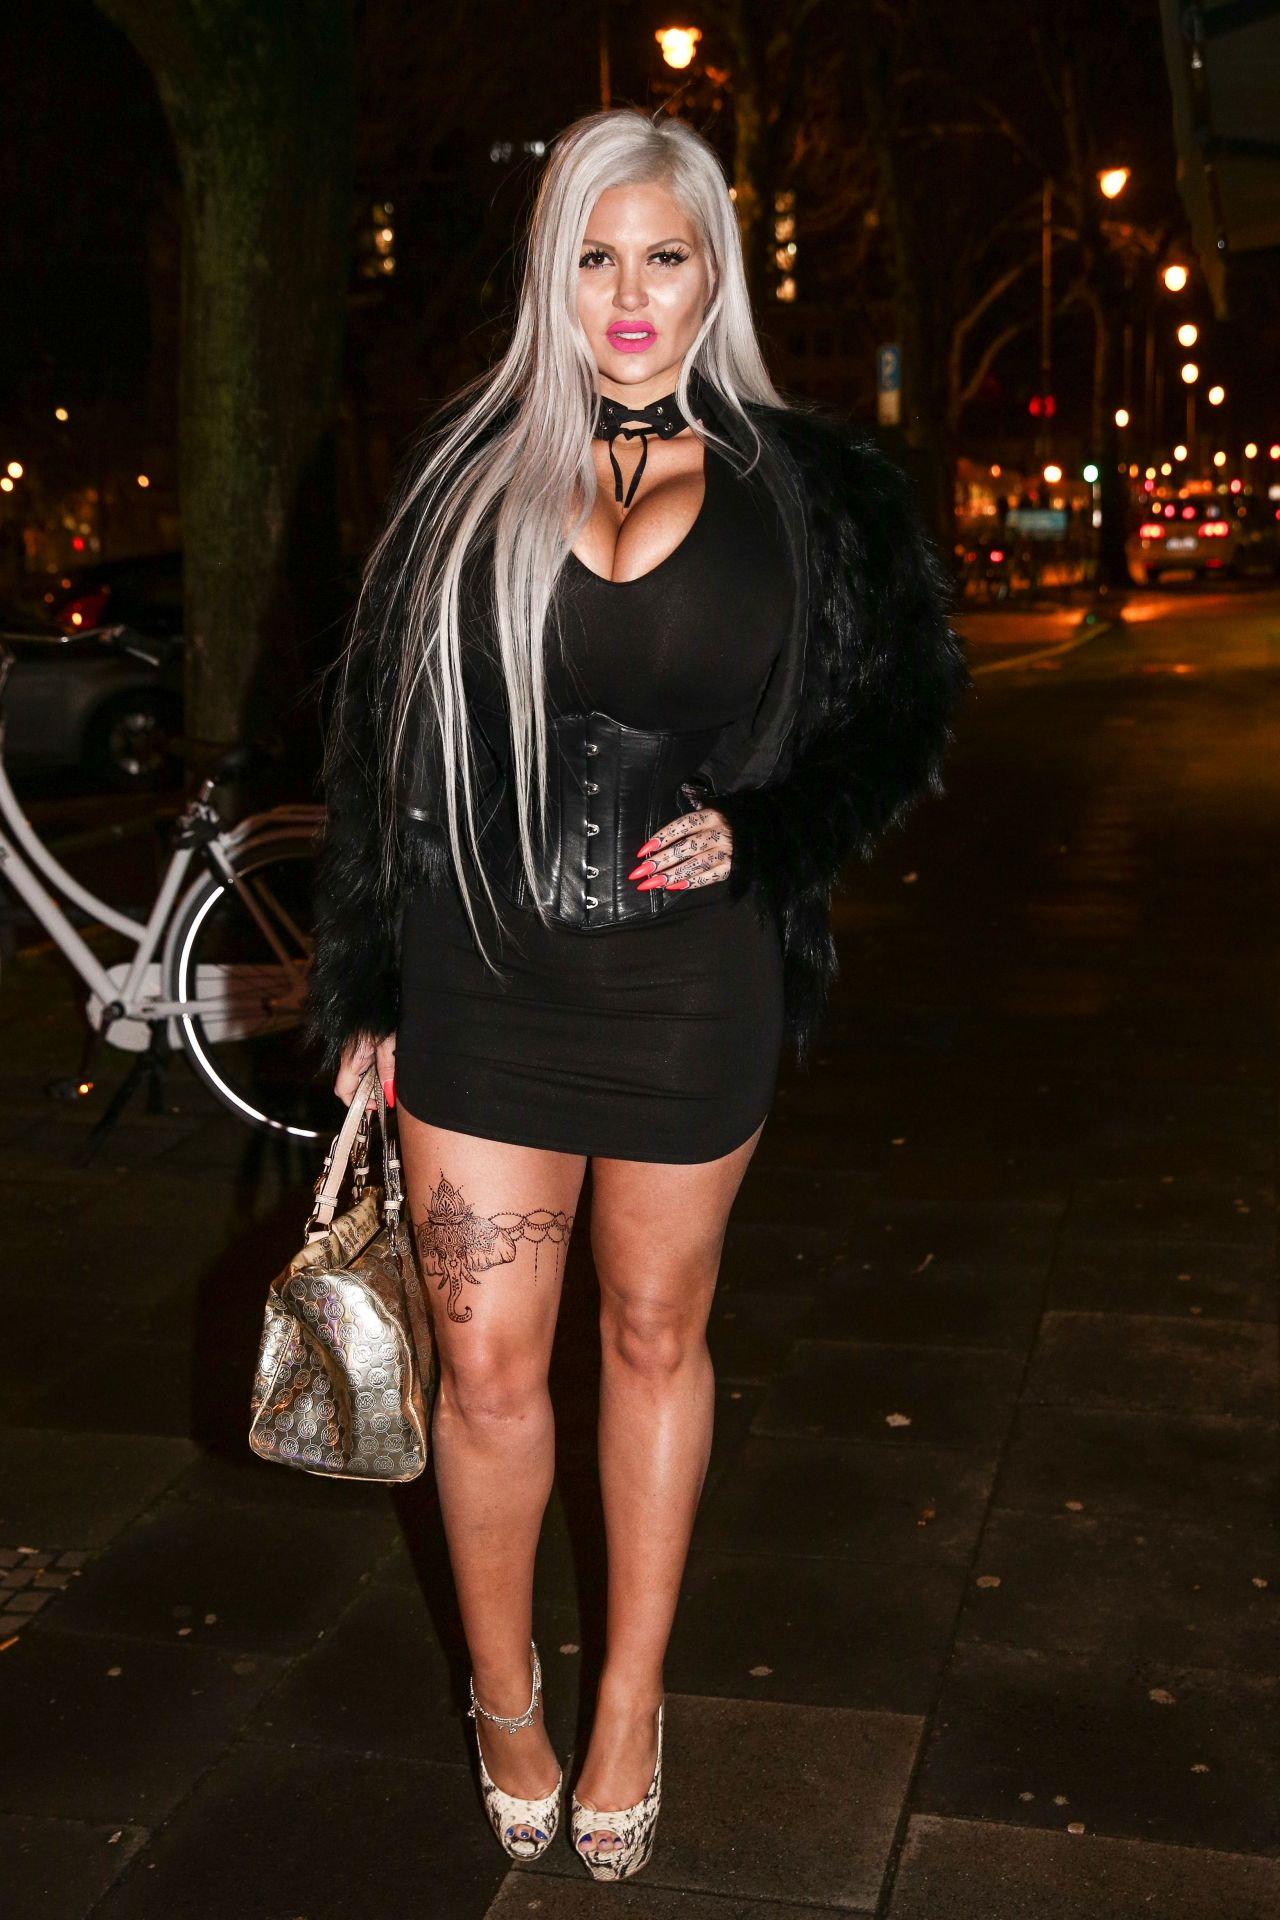 Sophia Vegas Wollersheim Out For Dinner In Cologne